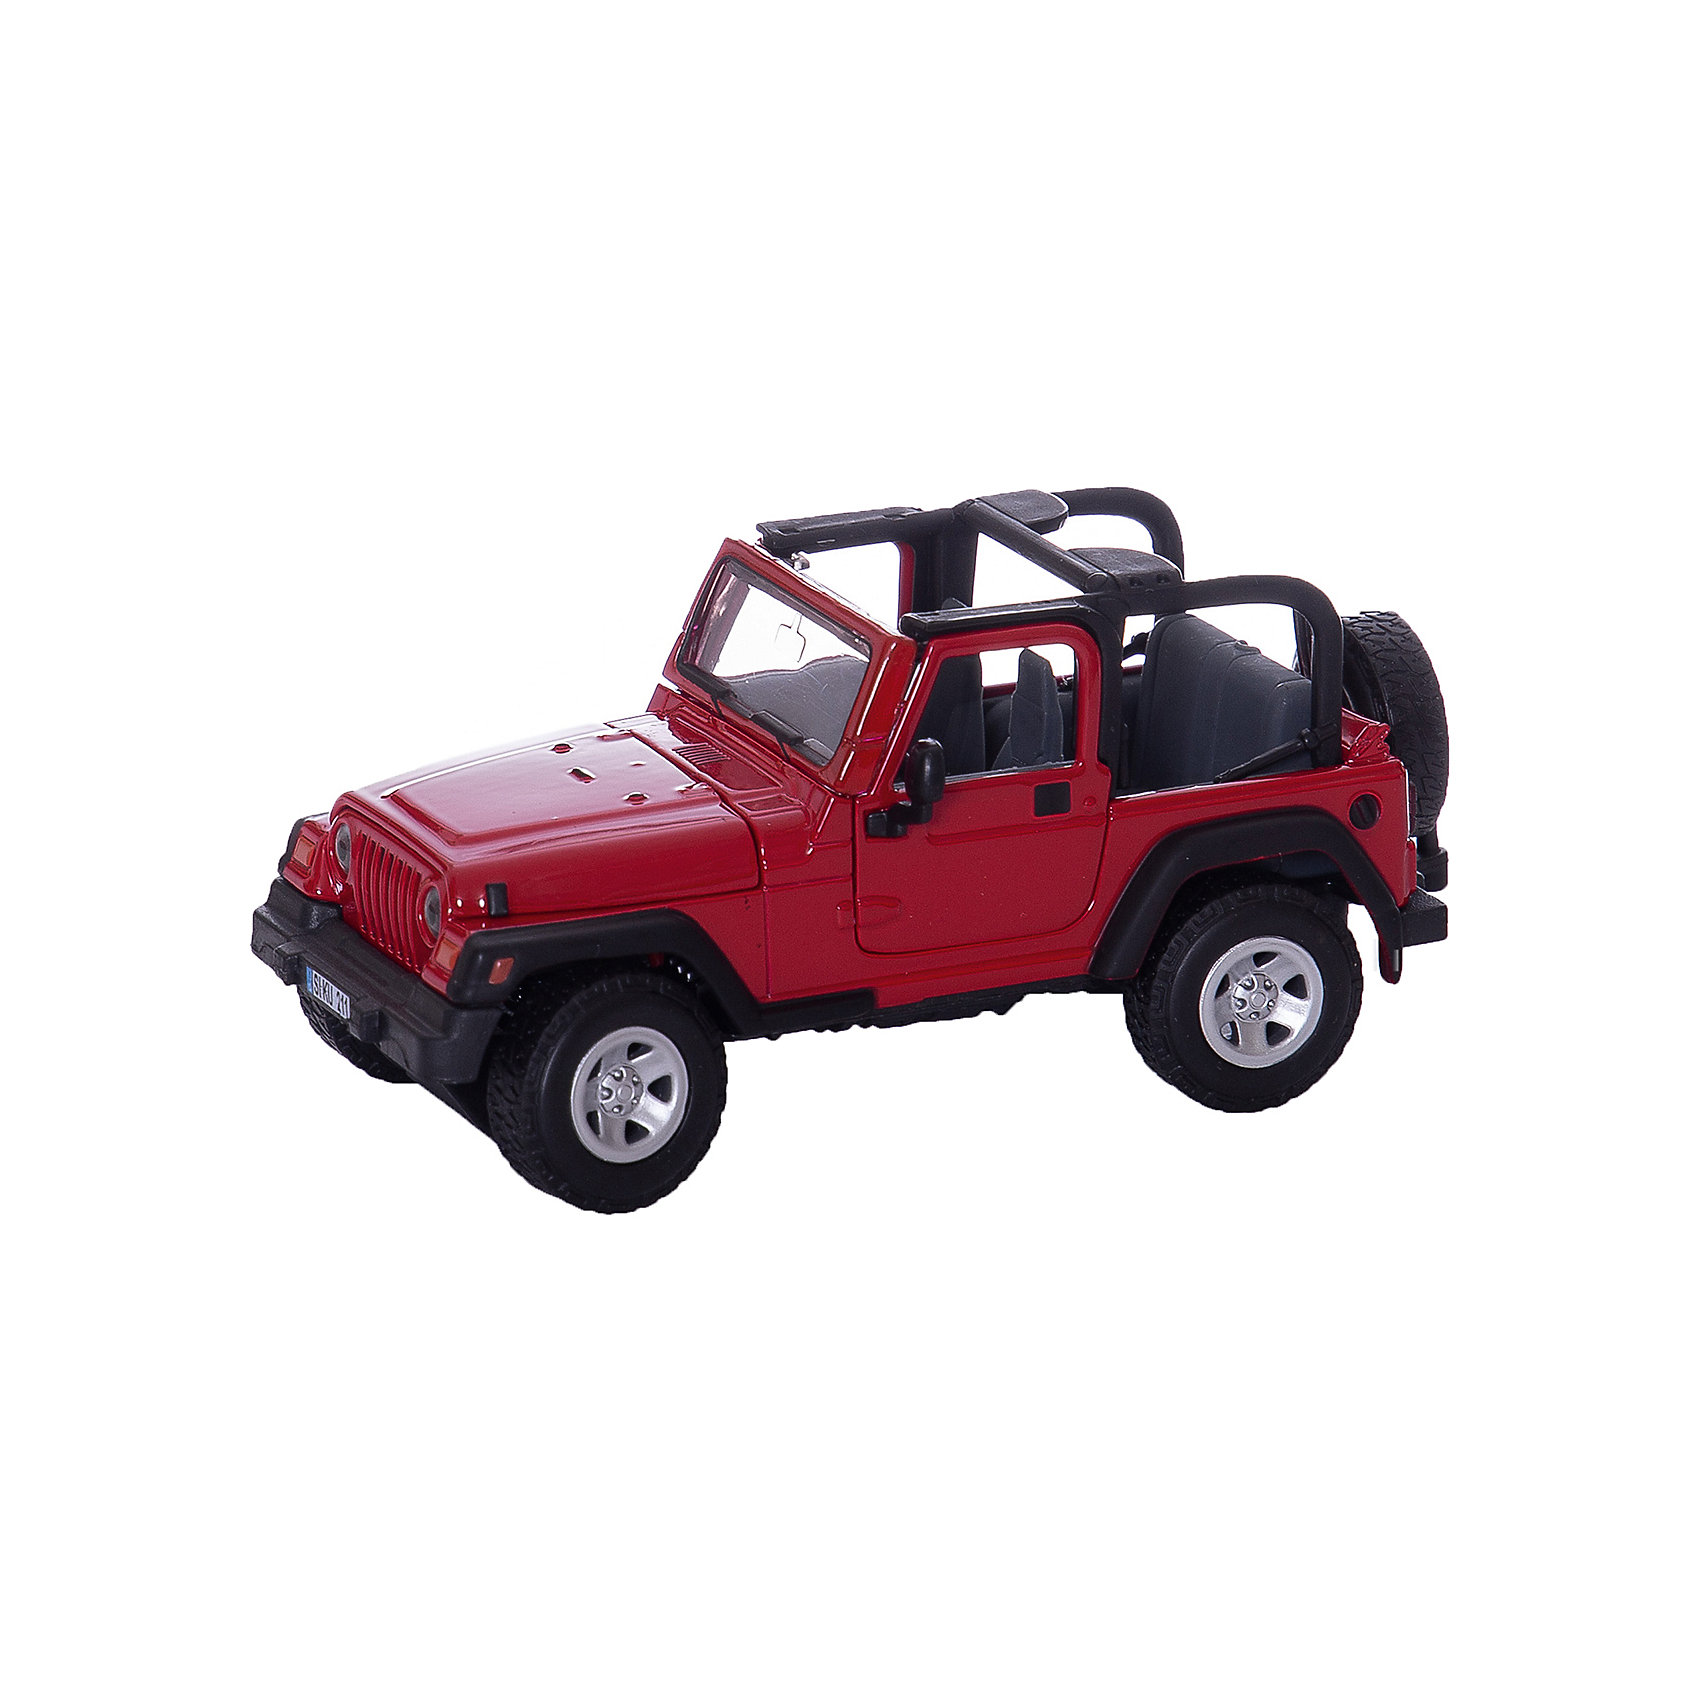 SIKU SIKU 4870 Jeep Wrangler 1:32 maisto jeep wrangler rubicon fire engine 1 18 scale alloy model metal diecast car toys high quality collection kids toys gift